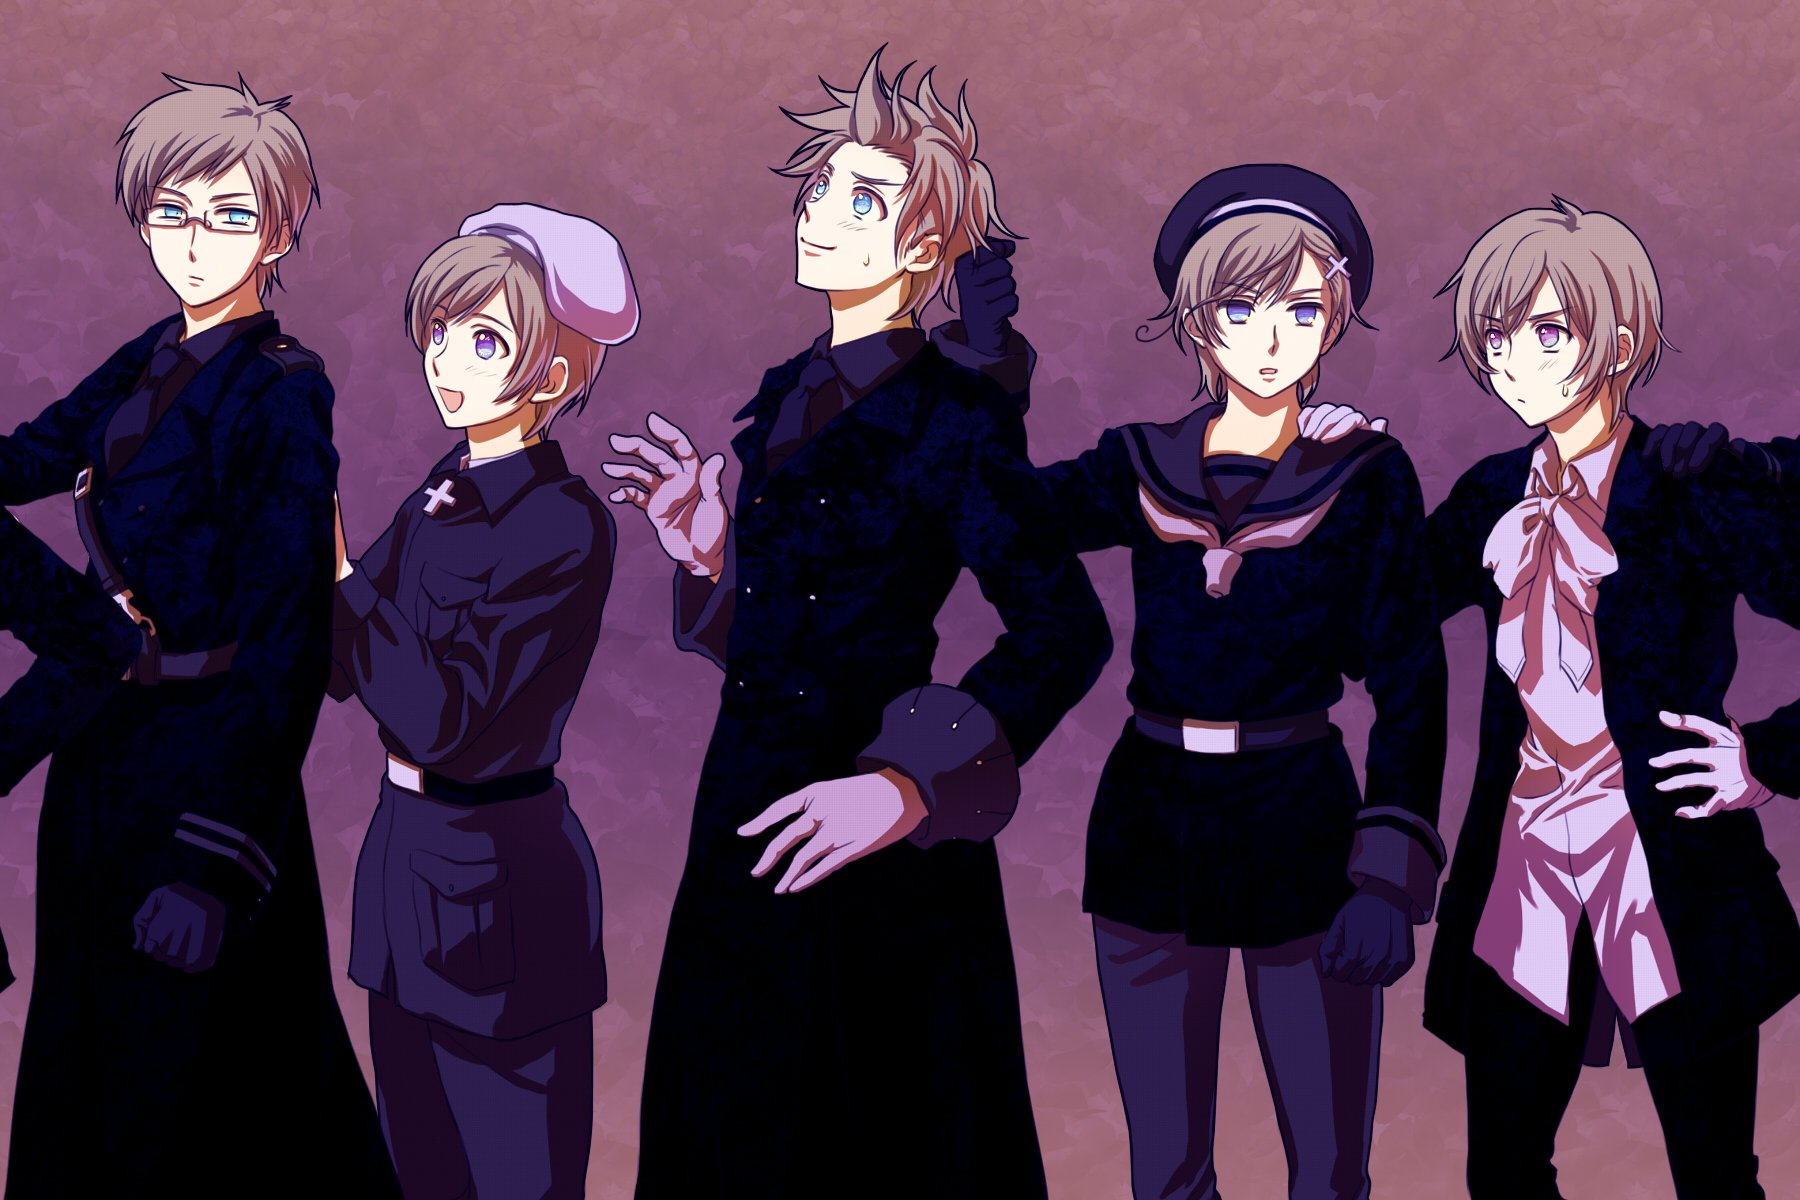 Axis Powers Hetalia Nordic Countries h wallpaper 1800x1200 306959 1800x1200